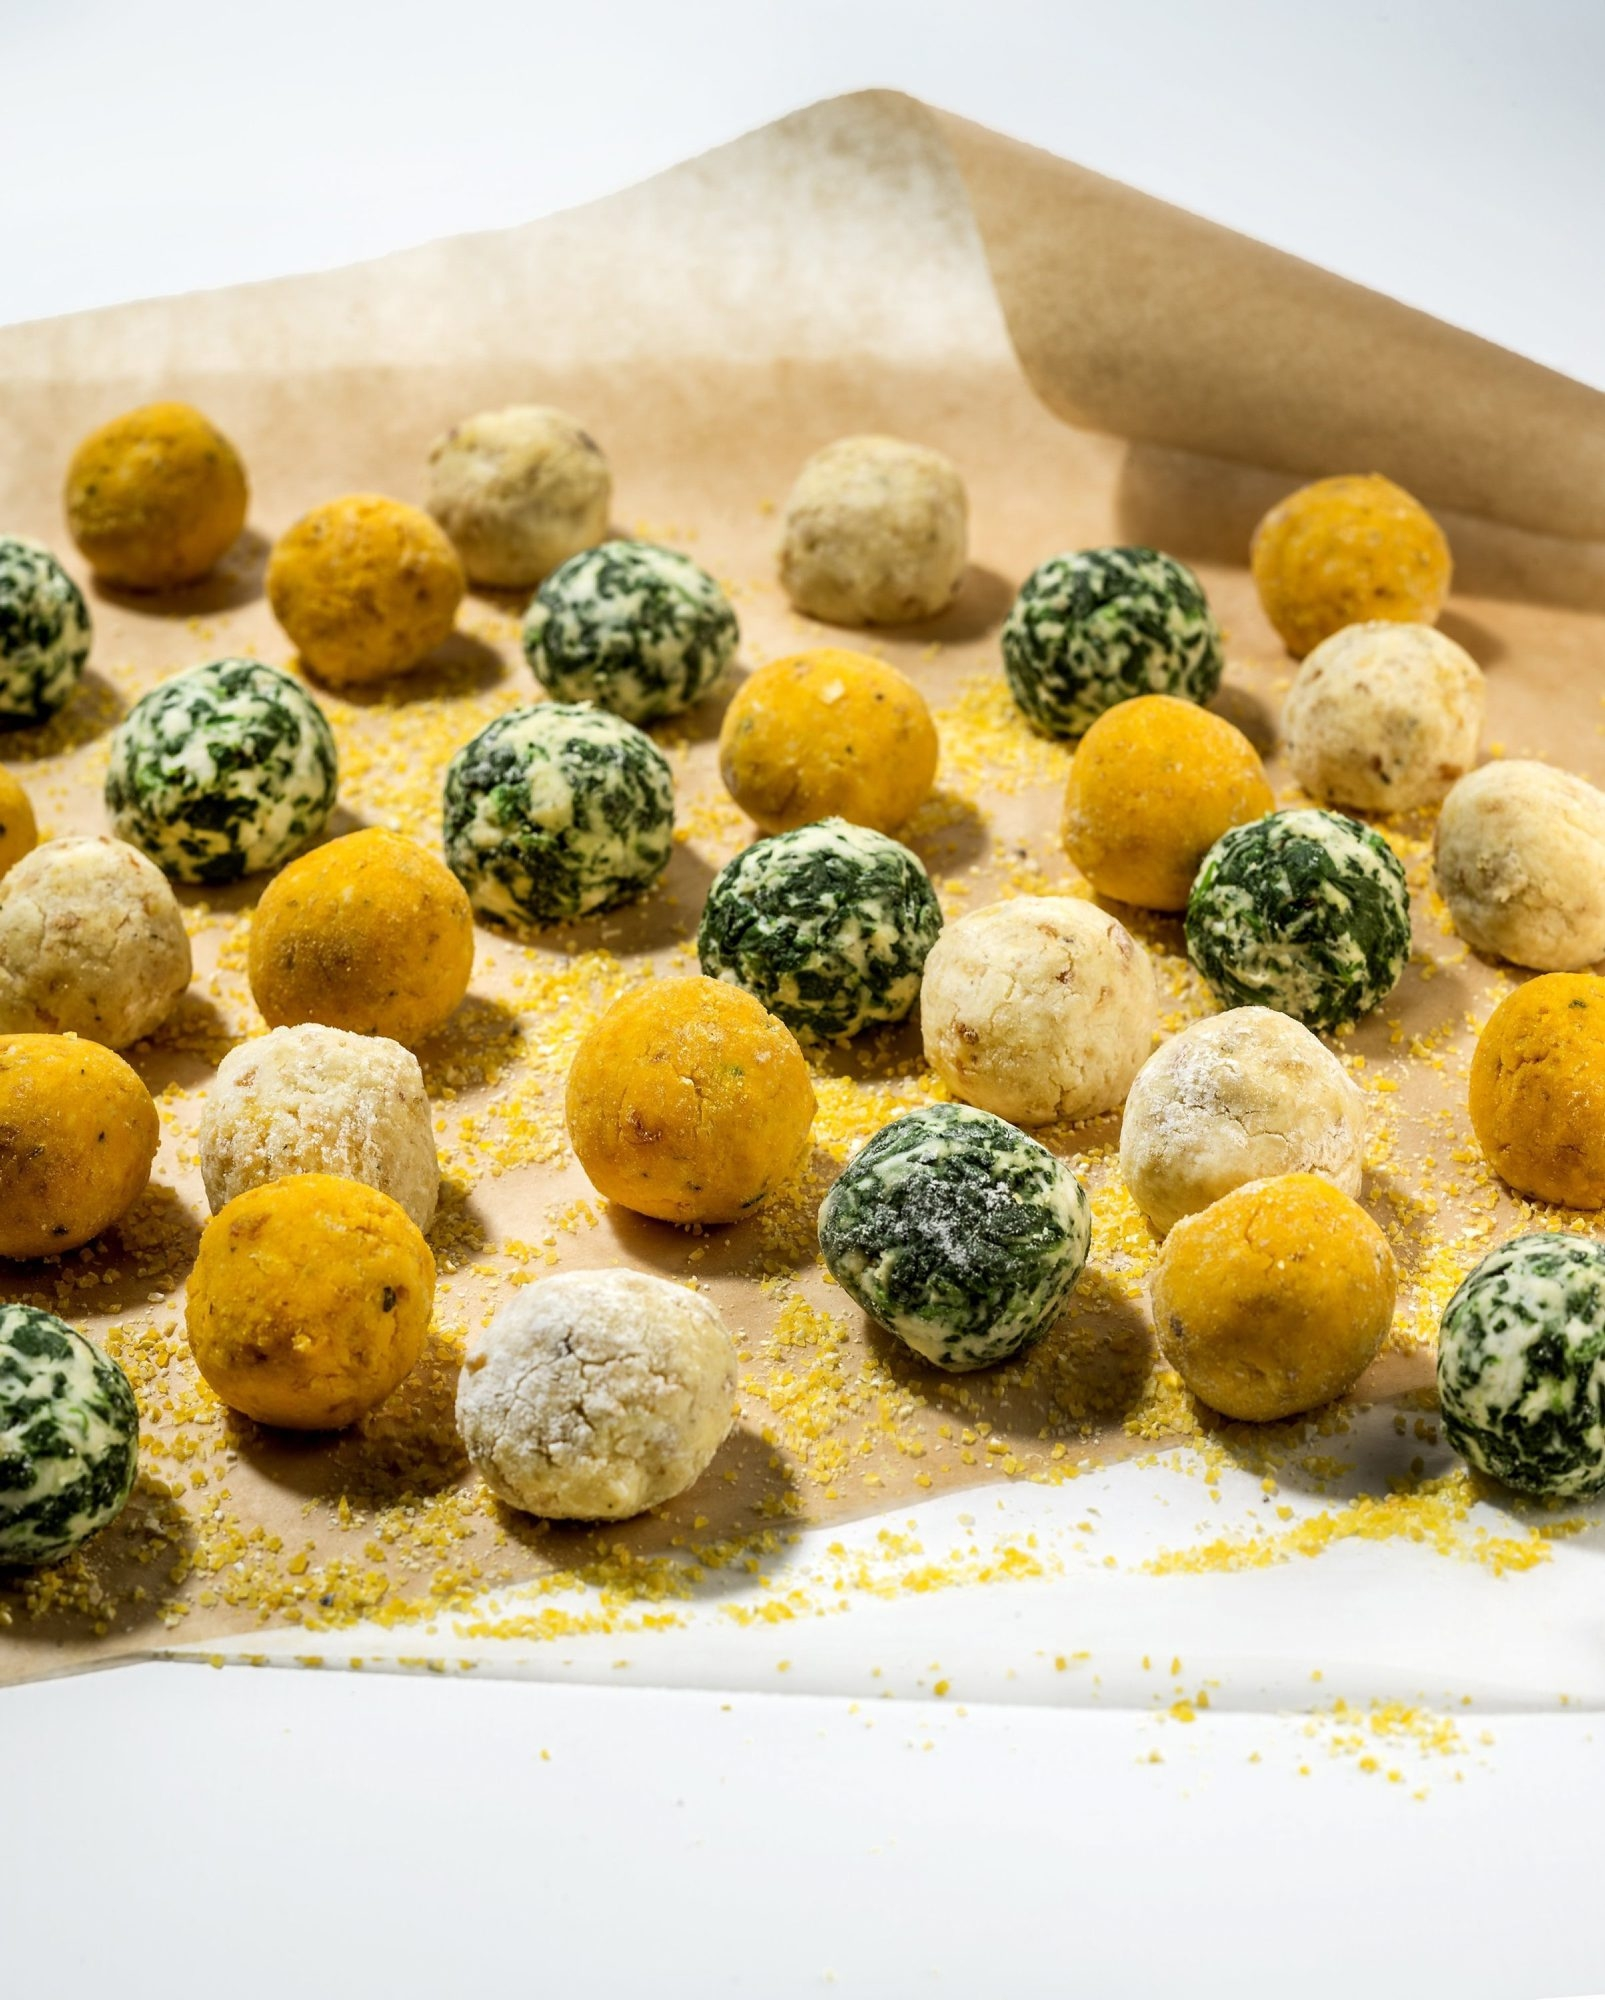 Gnudi, an Italian dumpling, has been showing up everywhere lately. Varities include plain ricotta gnudi as well as ricotta with squash or spinach. (Bill Hogan/Chicago Tribune/MCT)